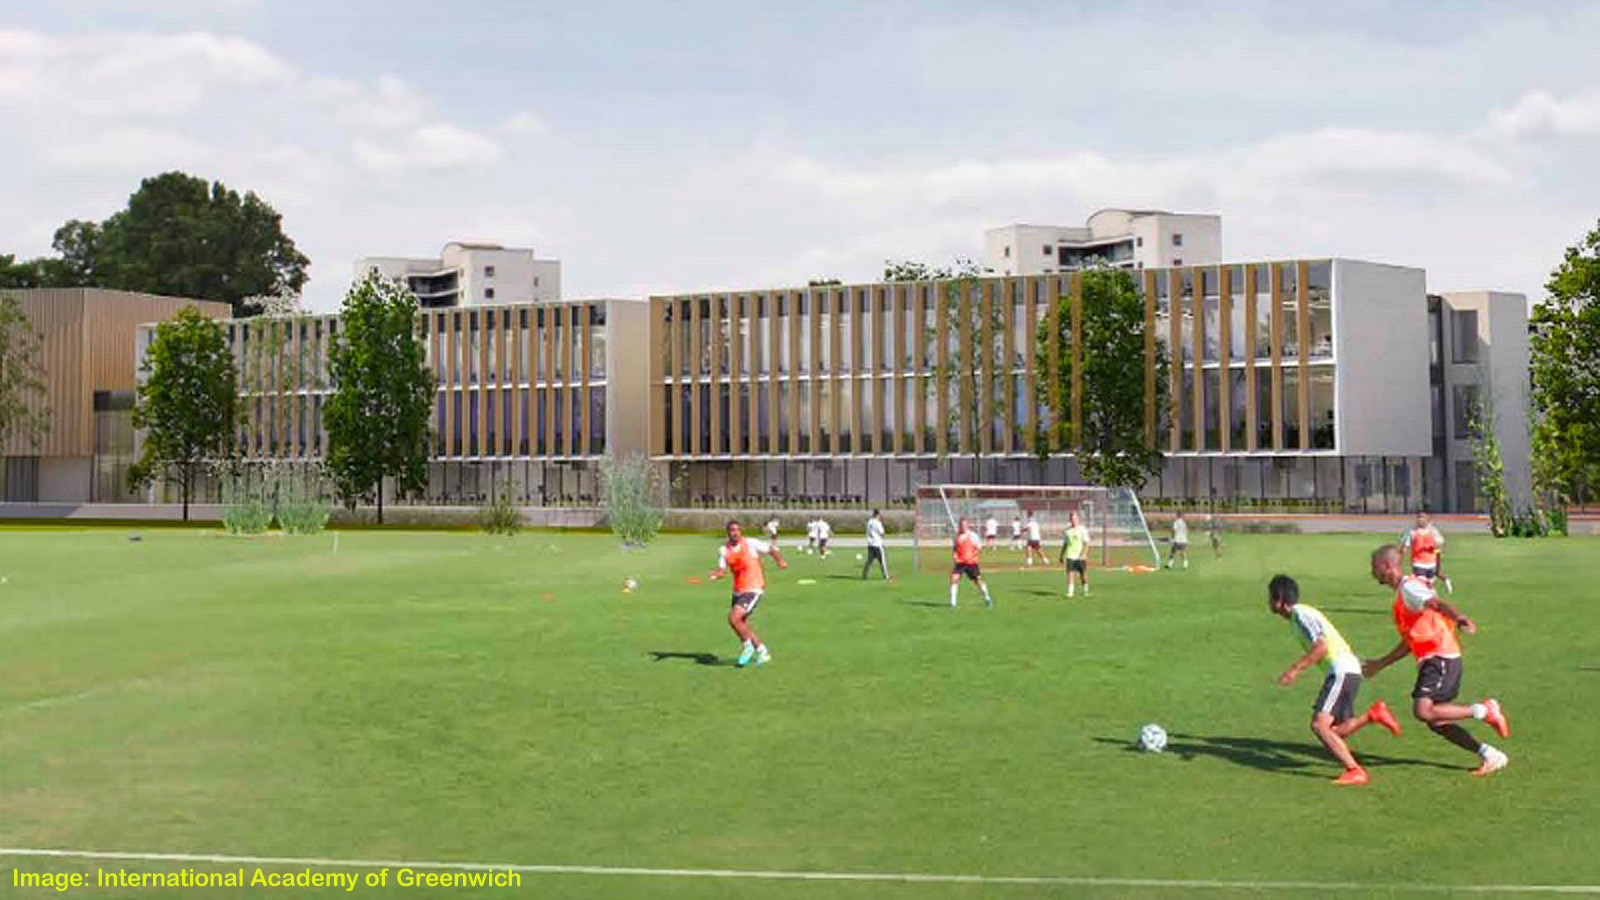 International Academy of Greenwich: Neighbours unhappy over free school's plan to move to playing field